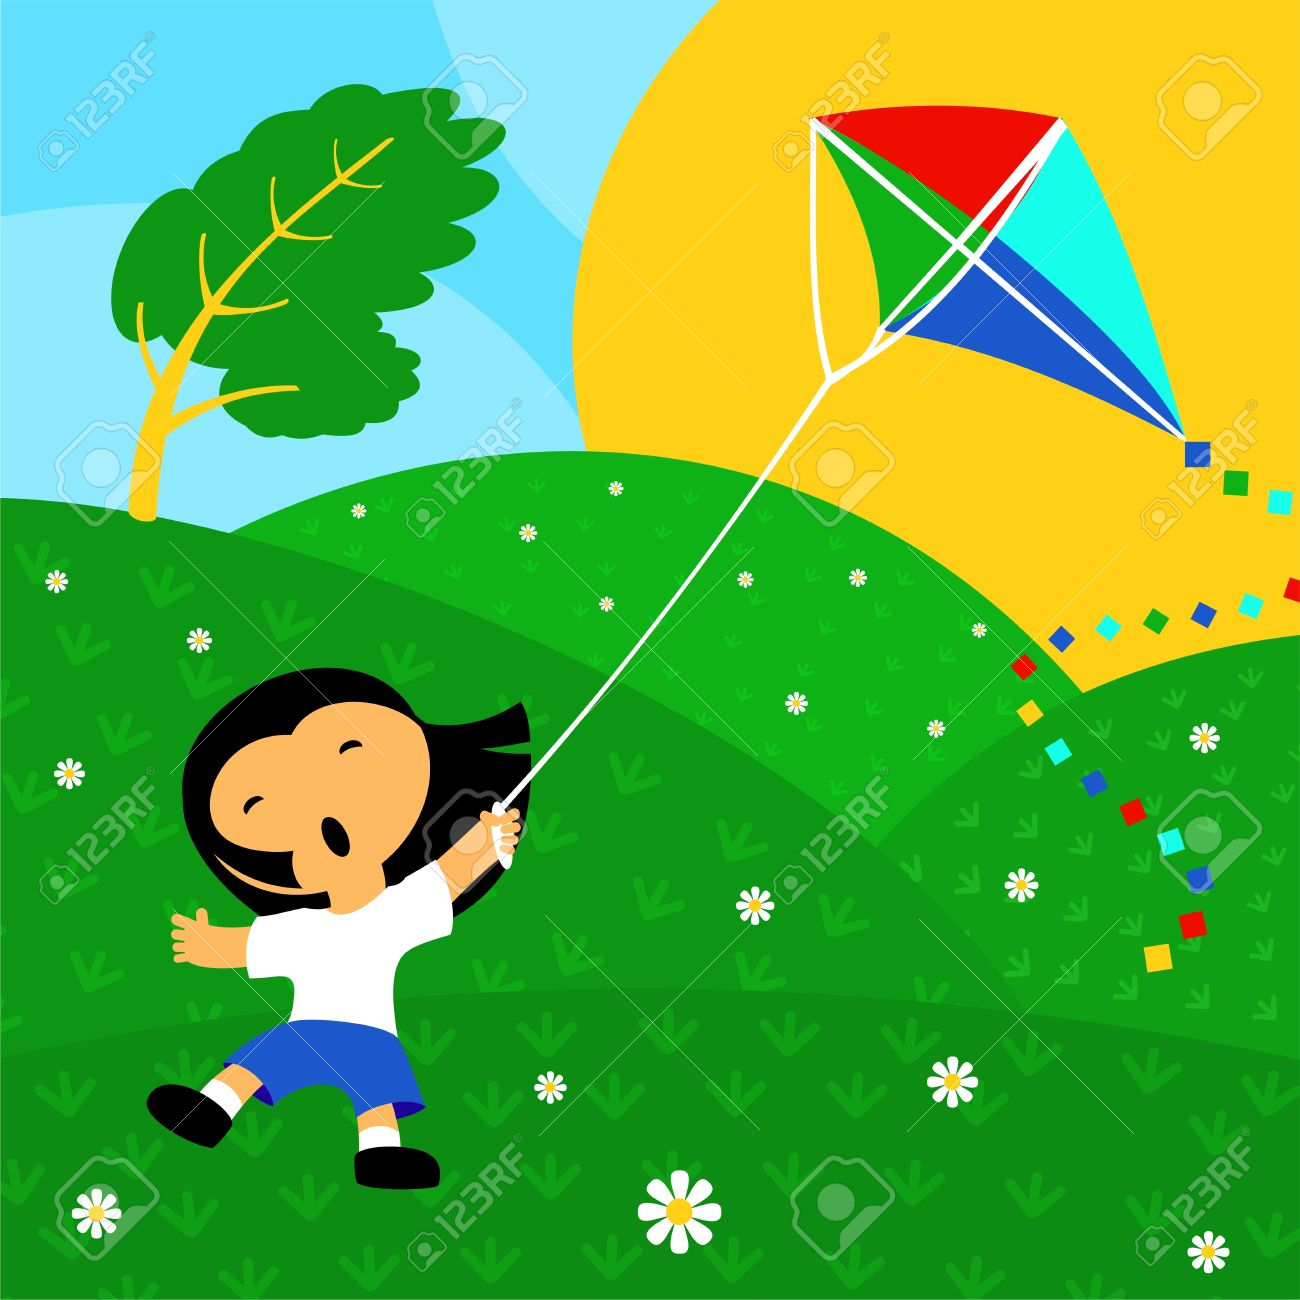 Windy clipart kite. Day portal